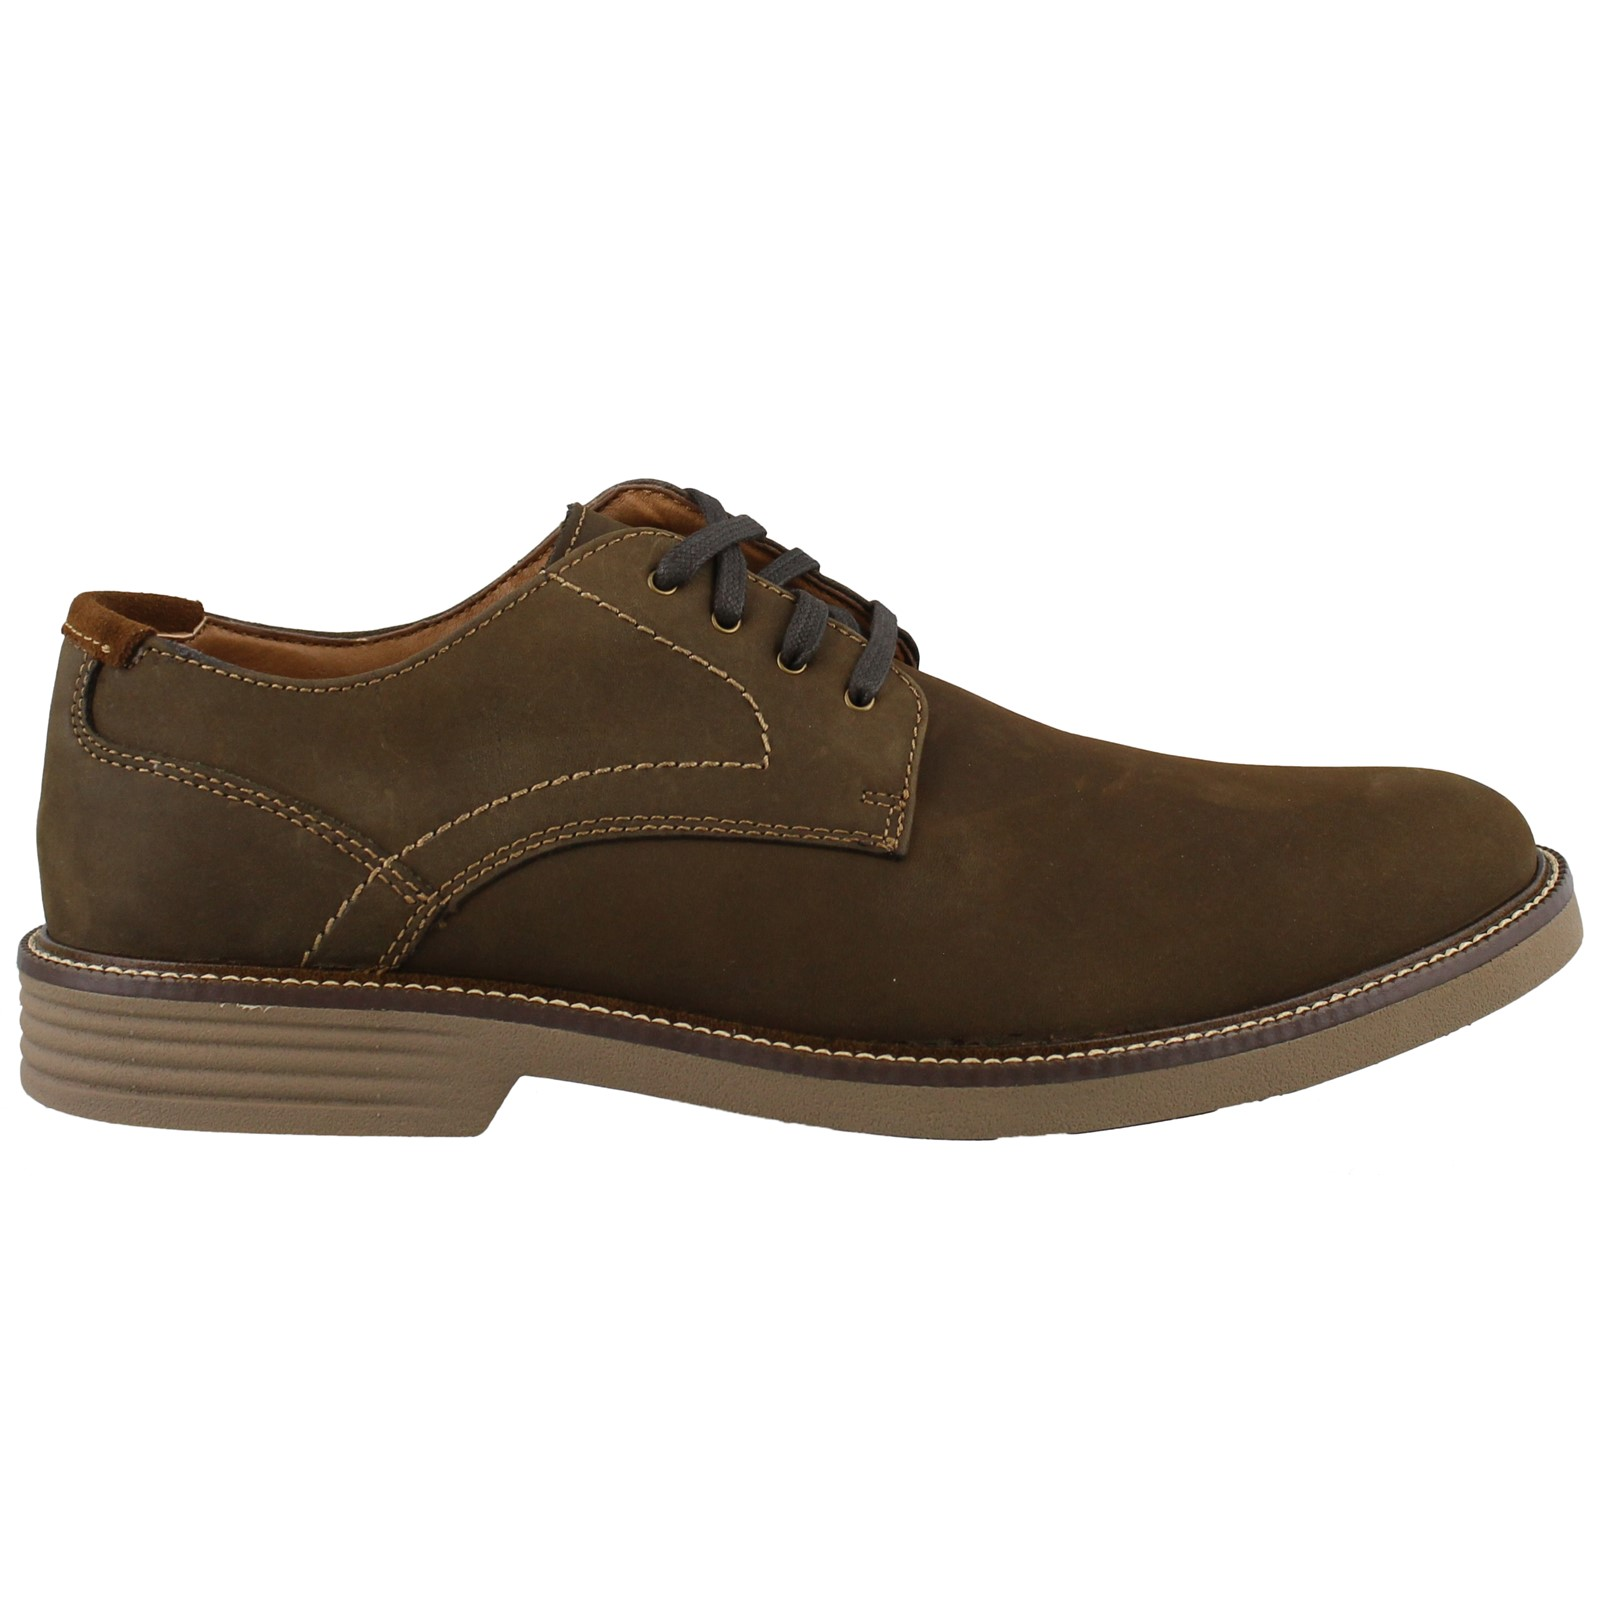 Men's Dockers, Parkway Plain Toe Derby